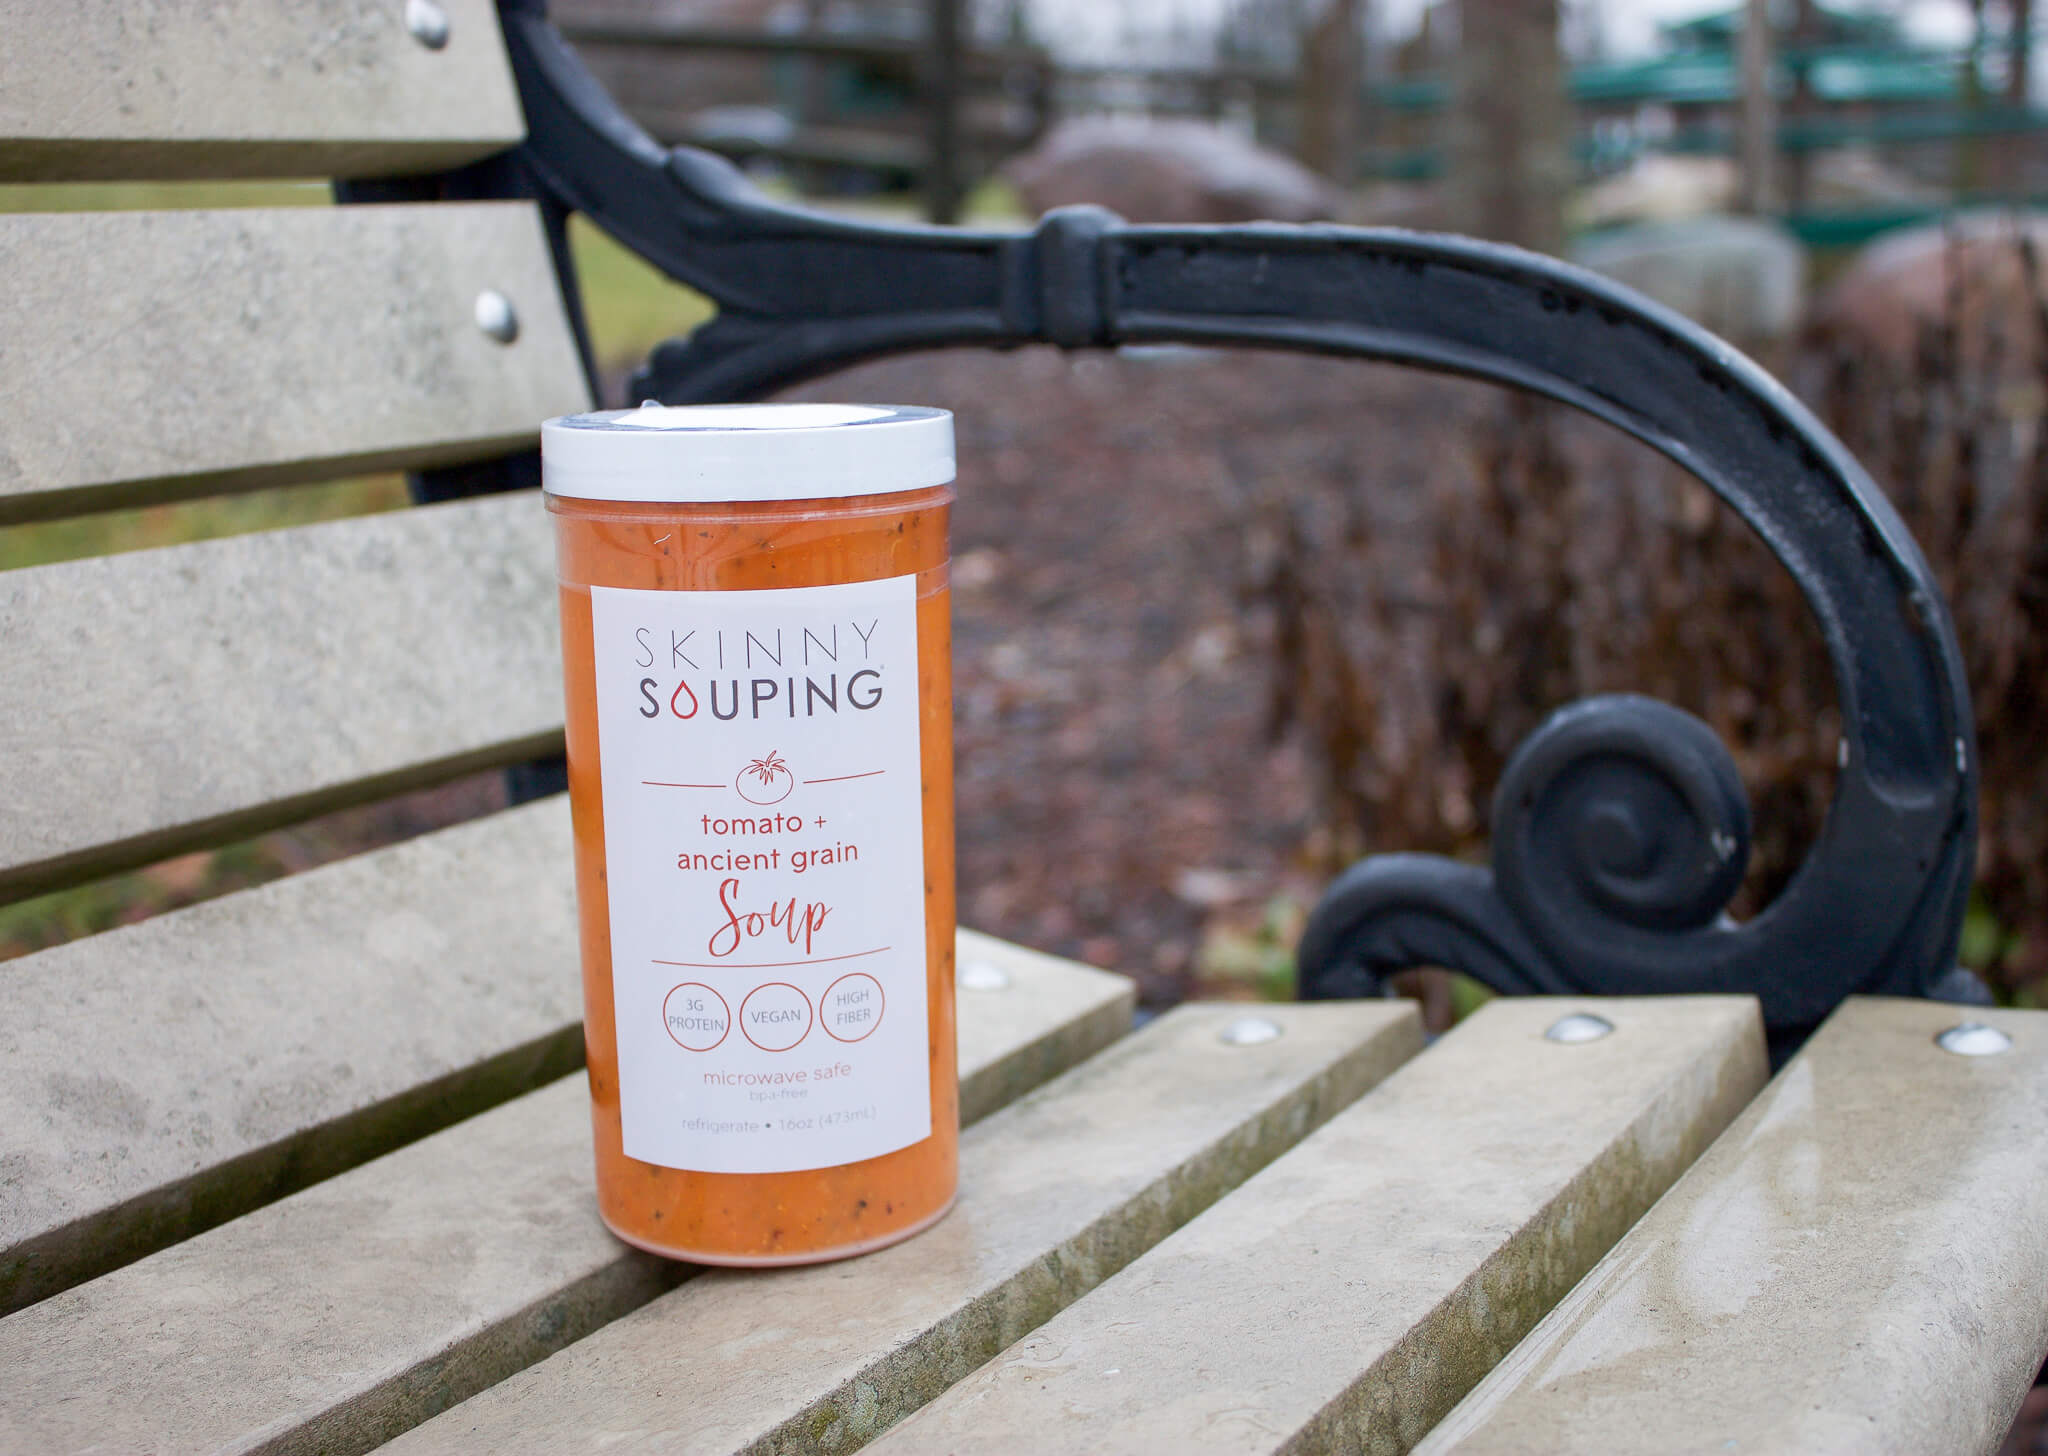 Skinny Souping®: Eating Well On The Go